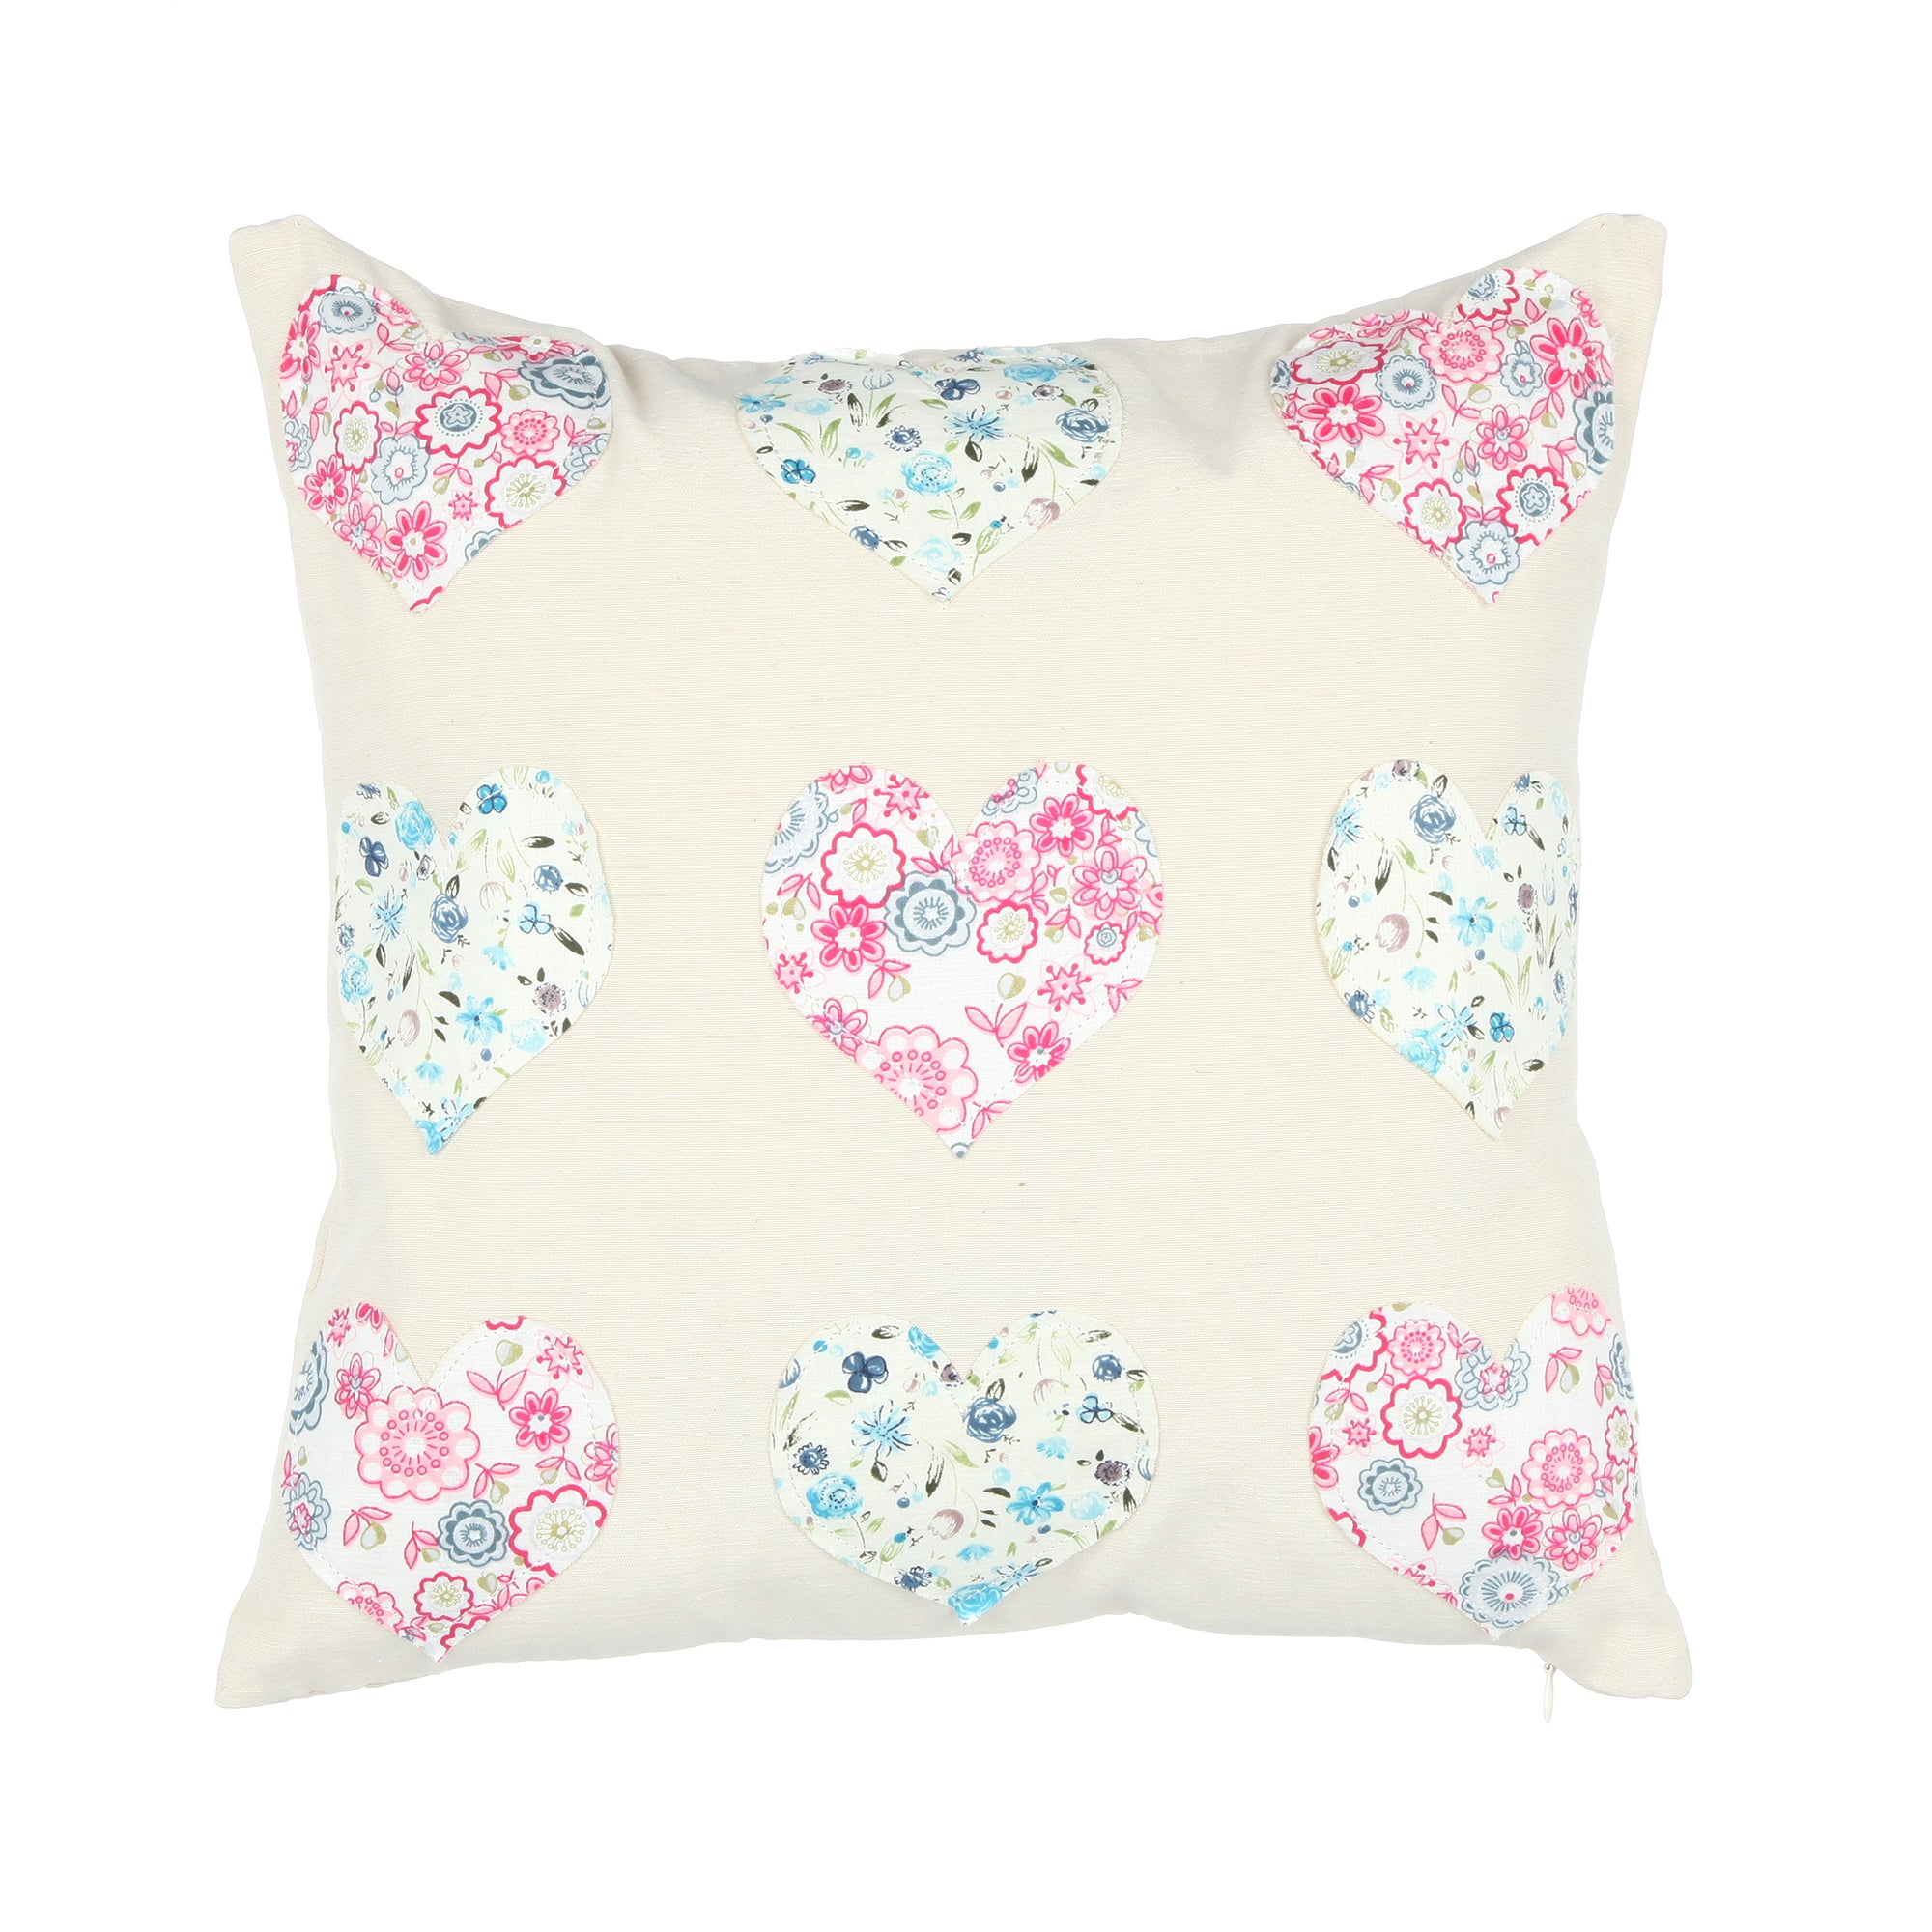 Applique Hearts Cushion